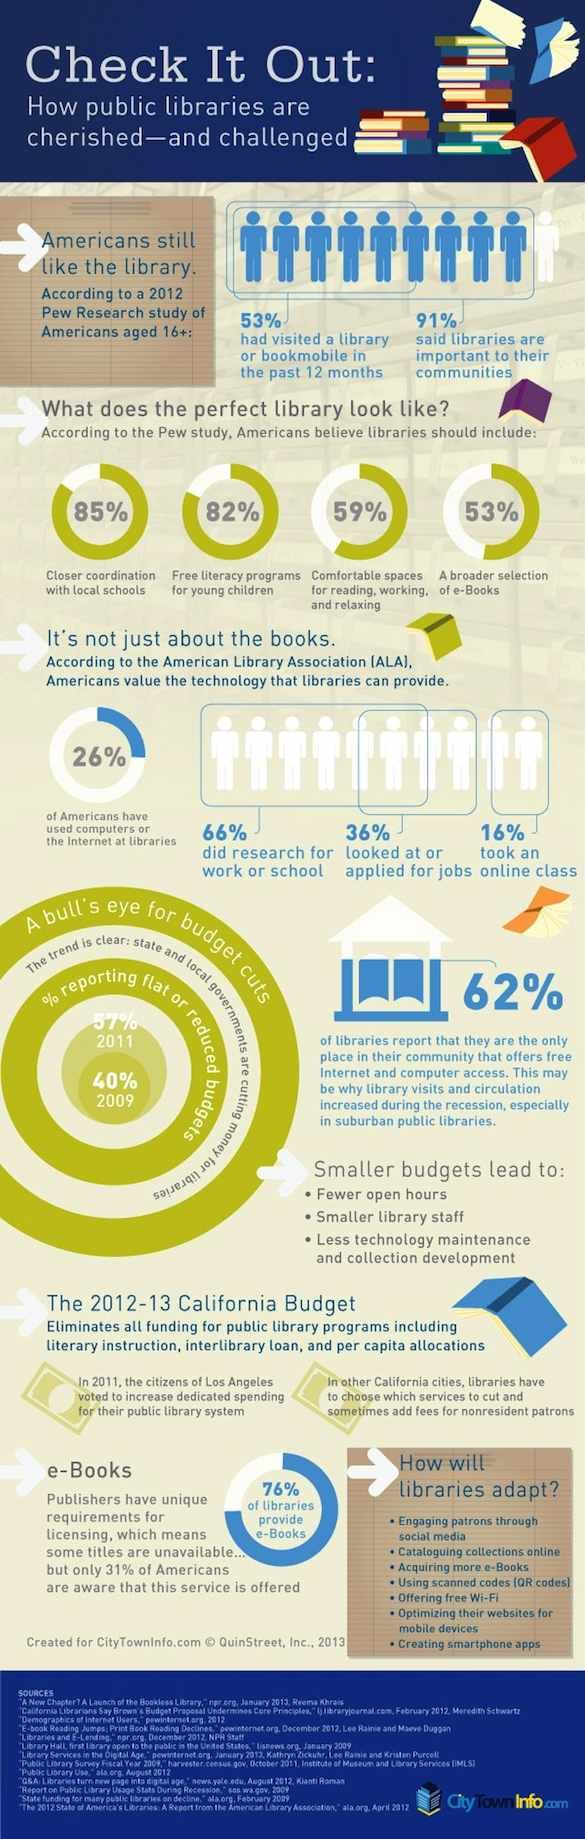 Americans still like the library: Infographic from the Out of Print Blog